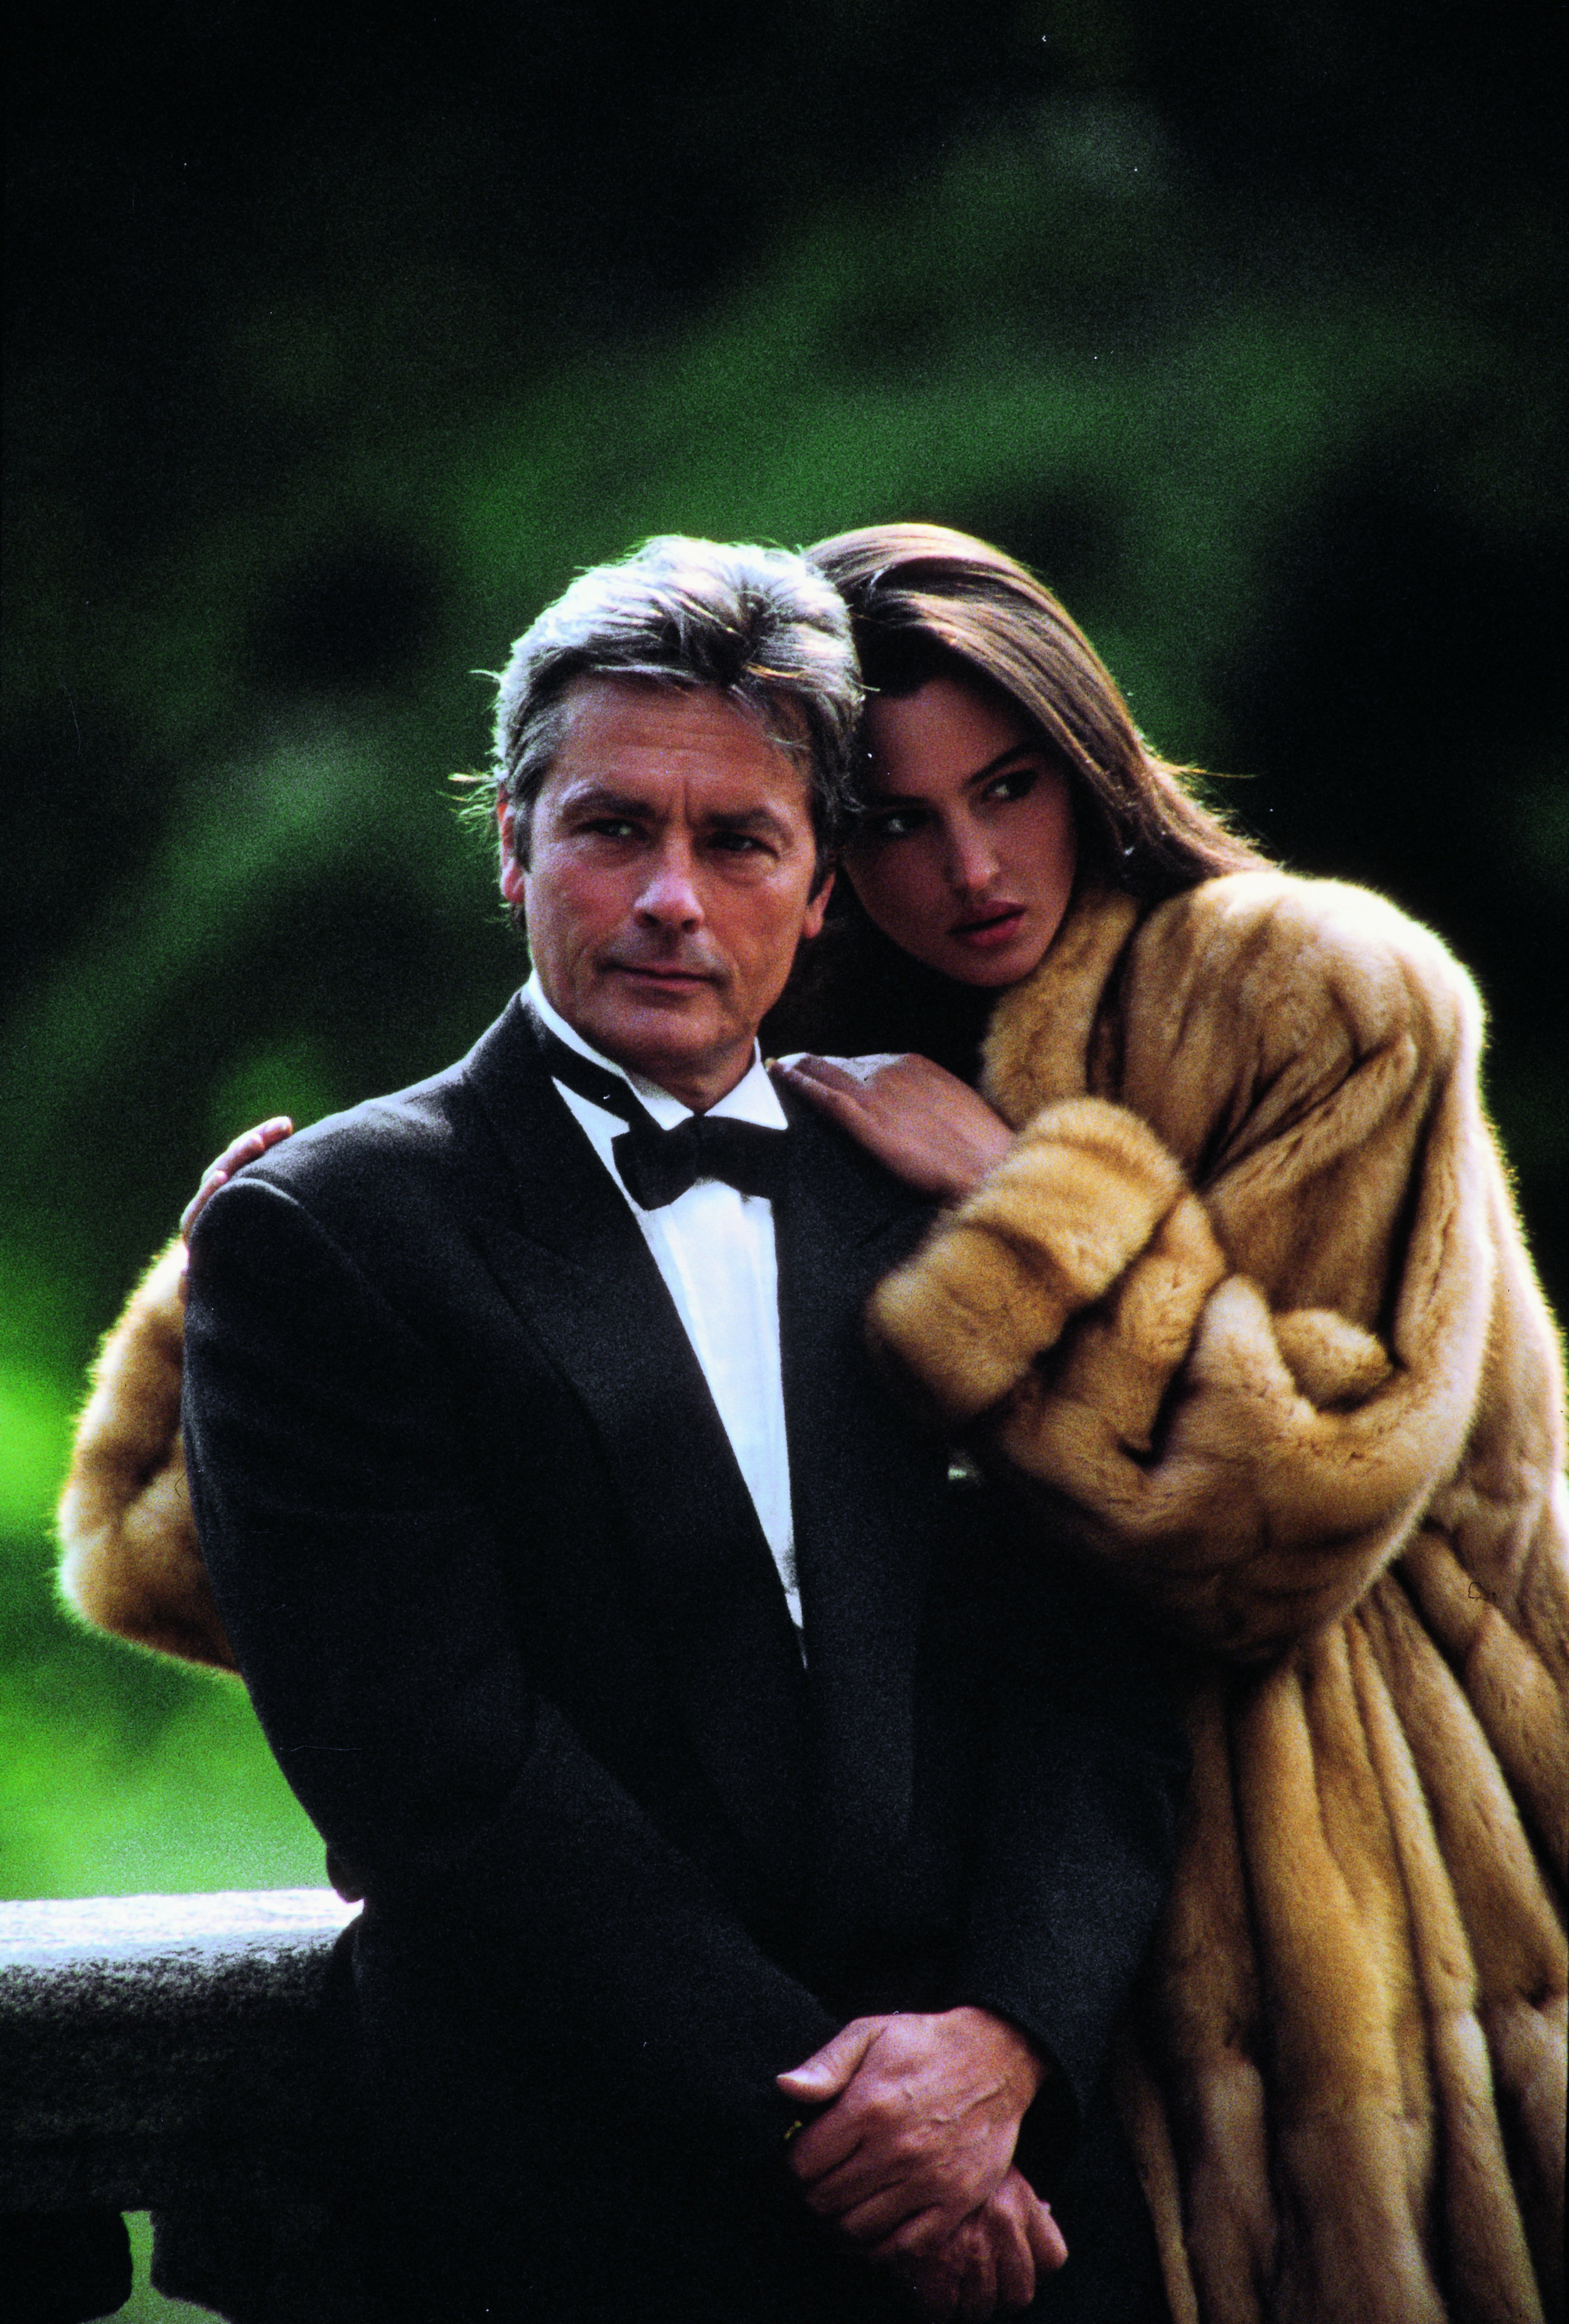 after which it was the turn of Alain Delon - with a young Monica Bellucci. Also followed by…